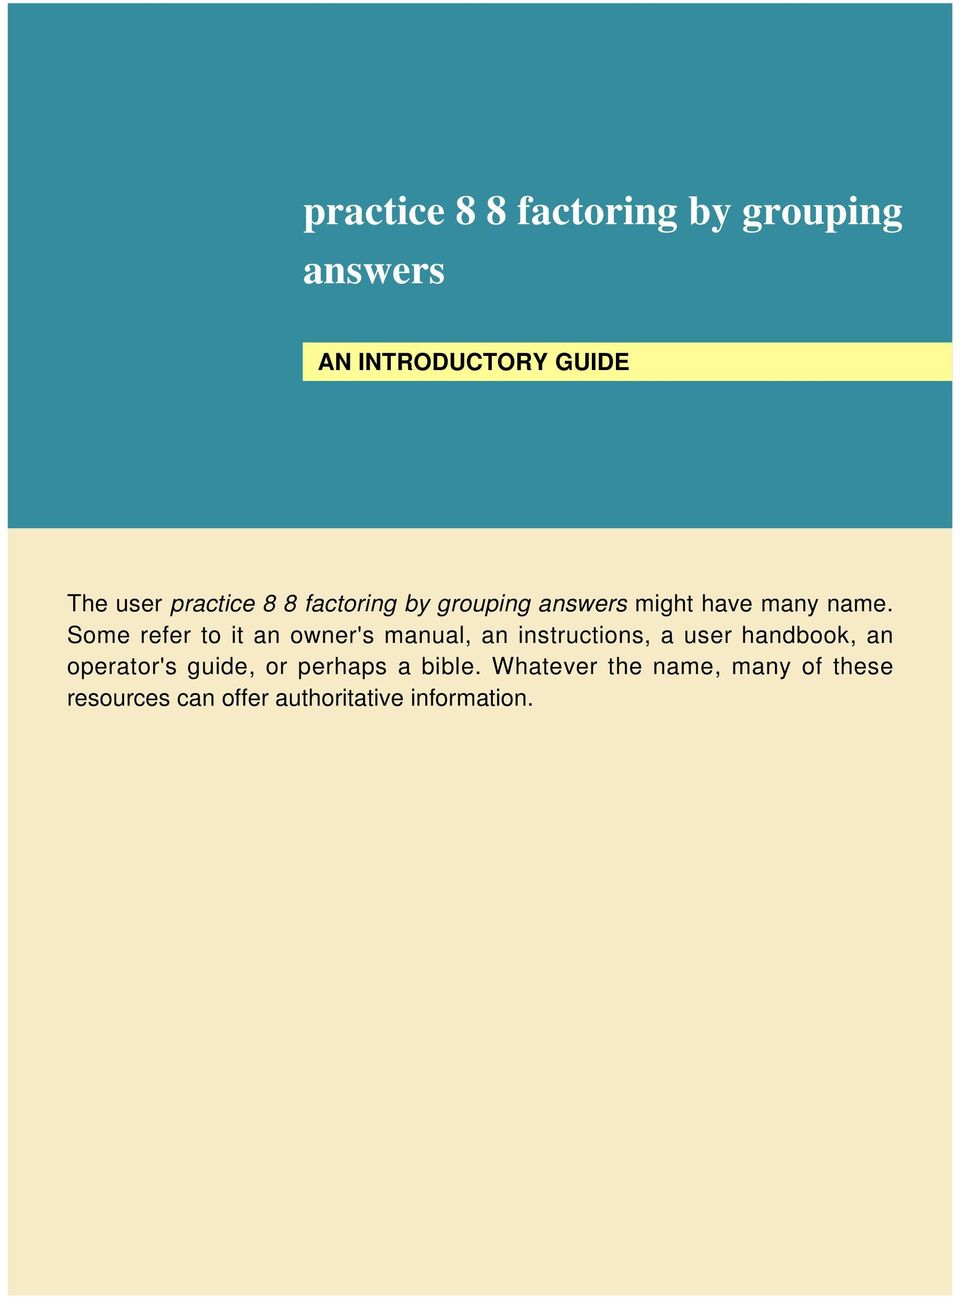 practice 8 8 factoring by grouping answers - PDF